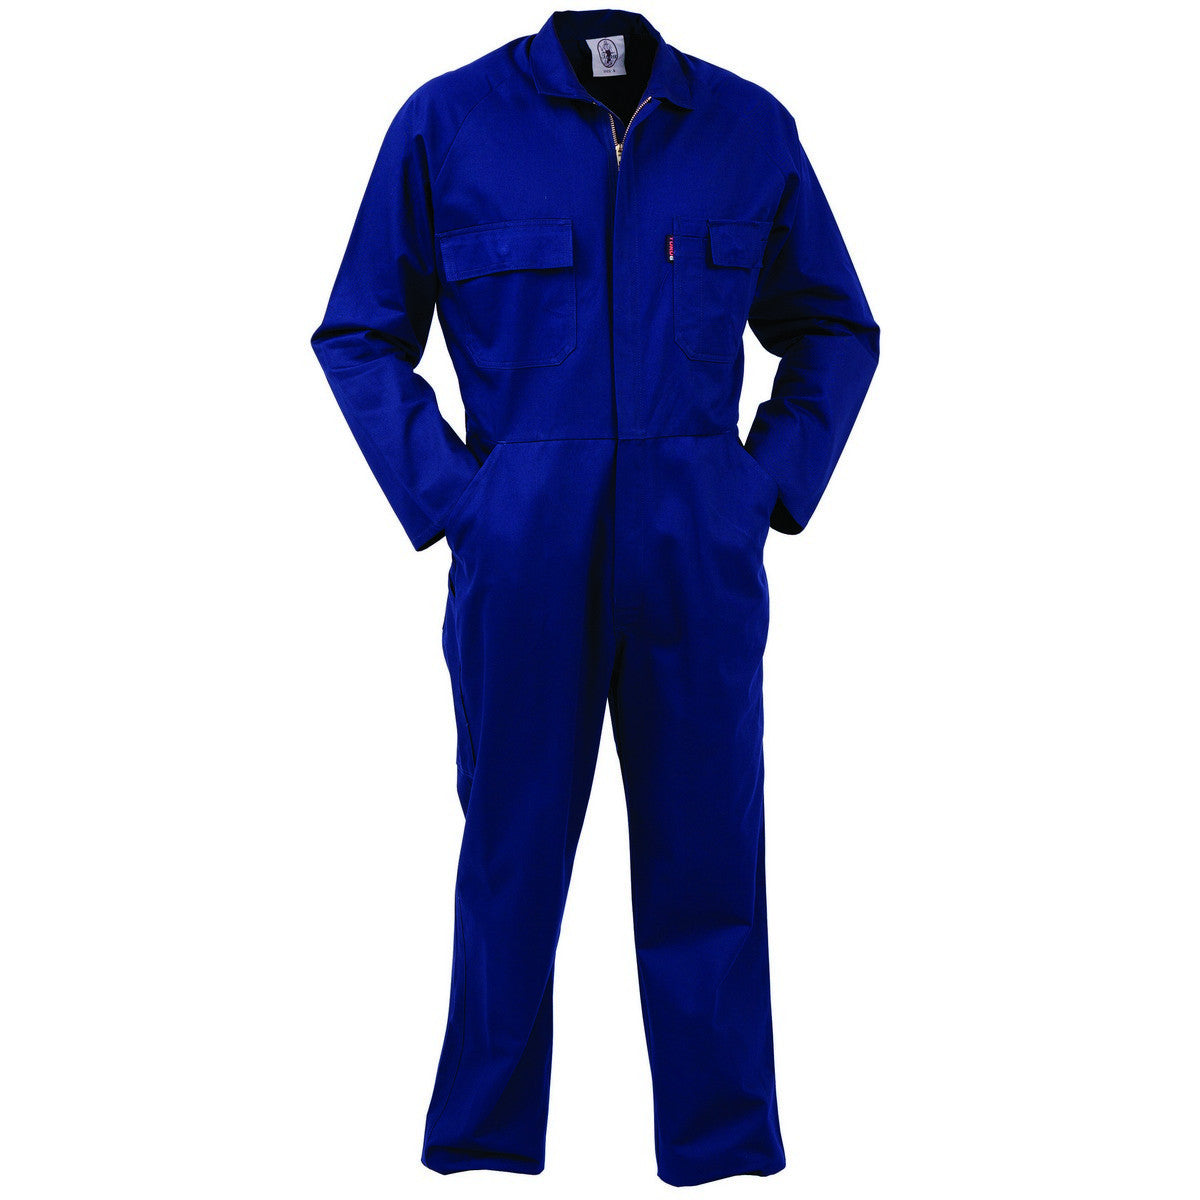 Image of Polycotton Overall L/S